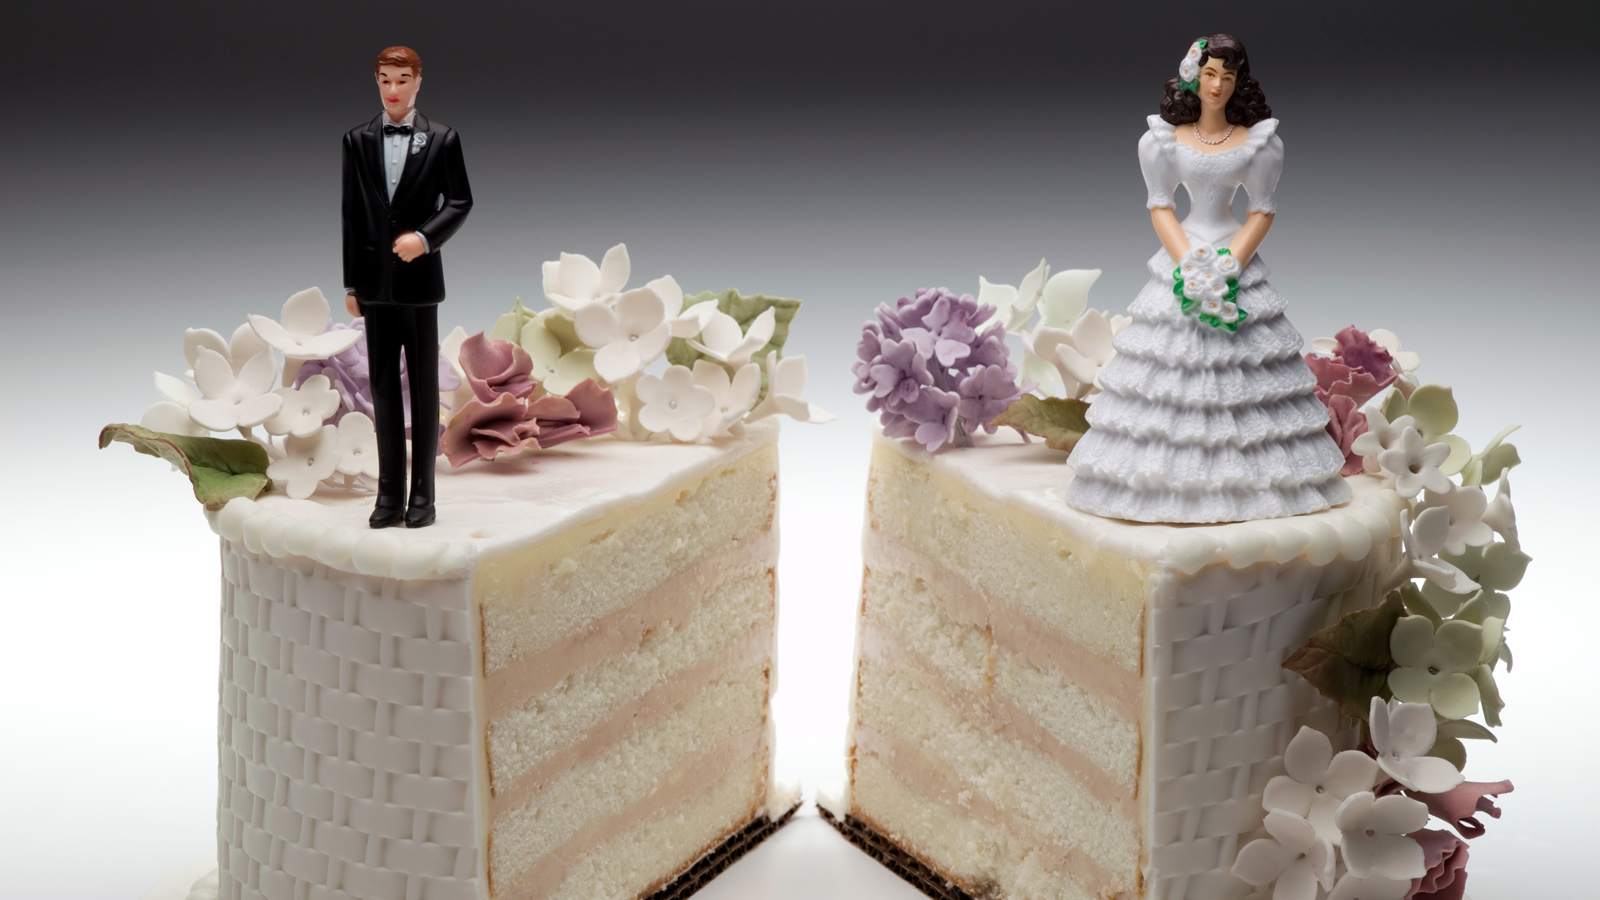 The 11 states with the highest divorce rates